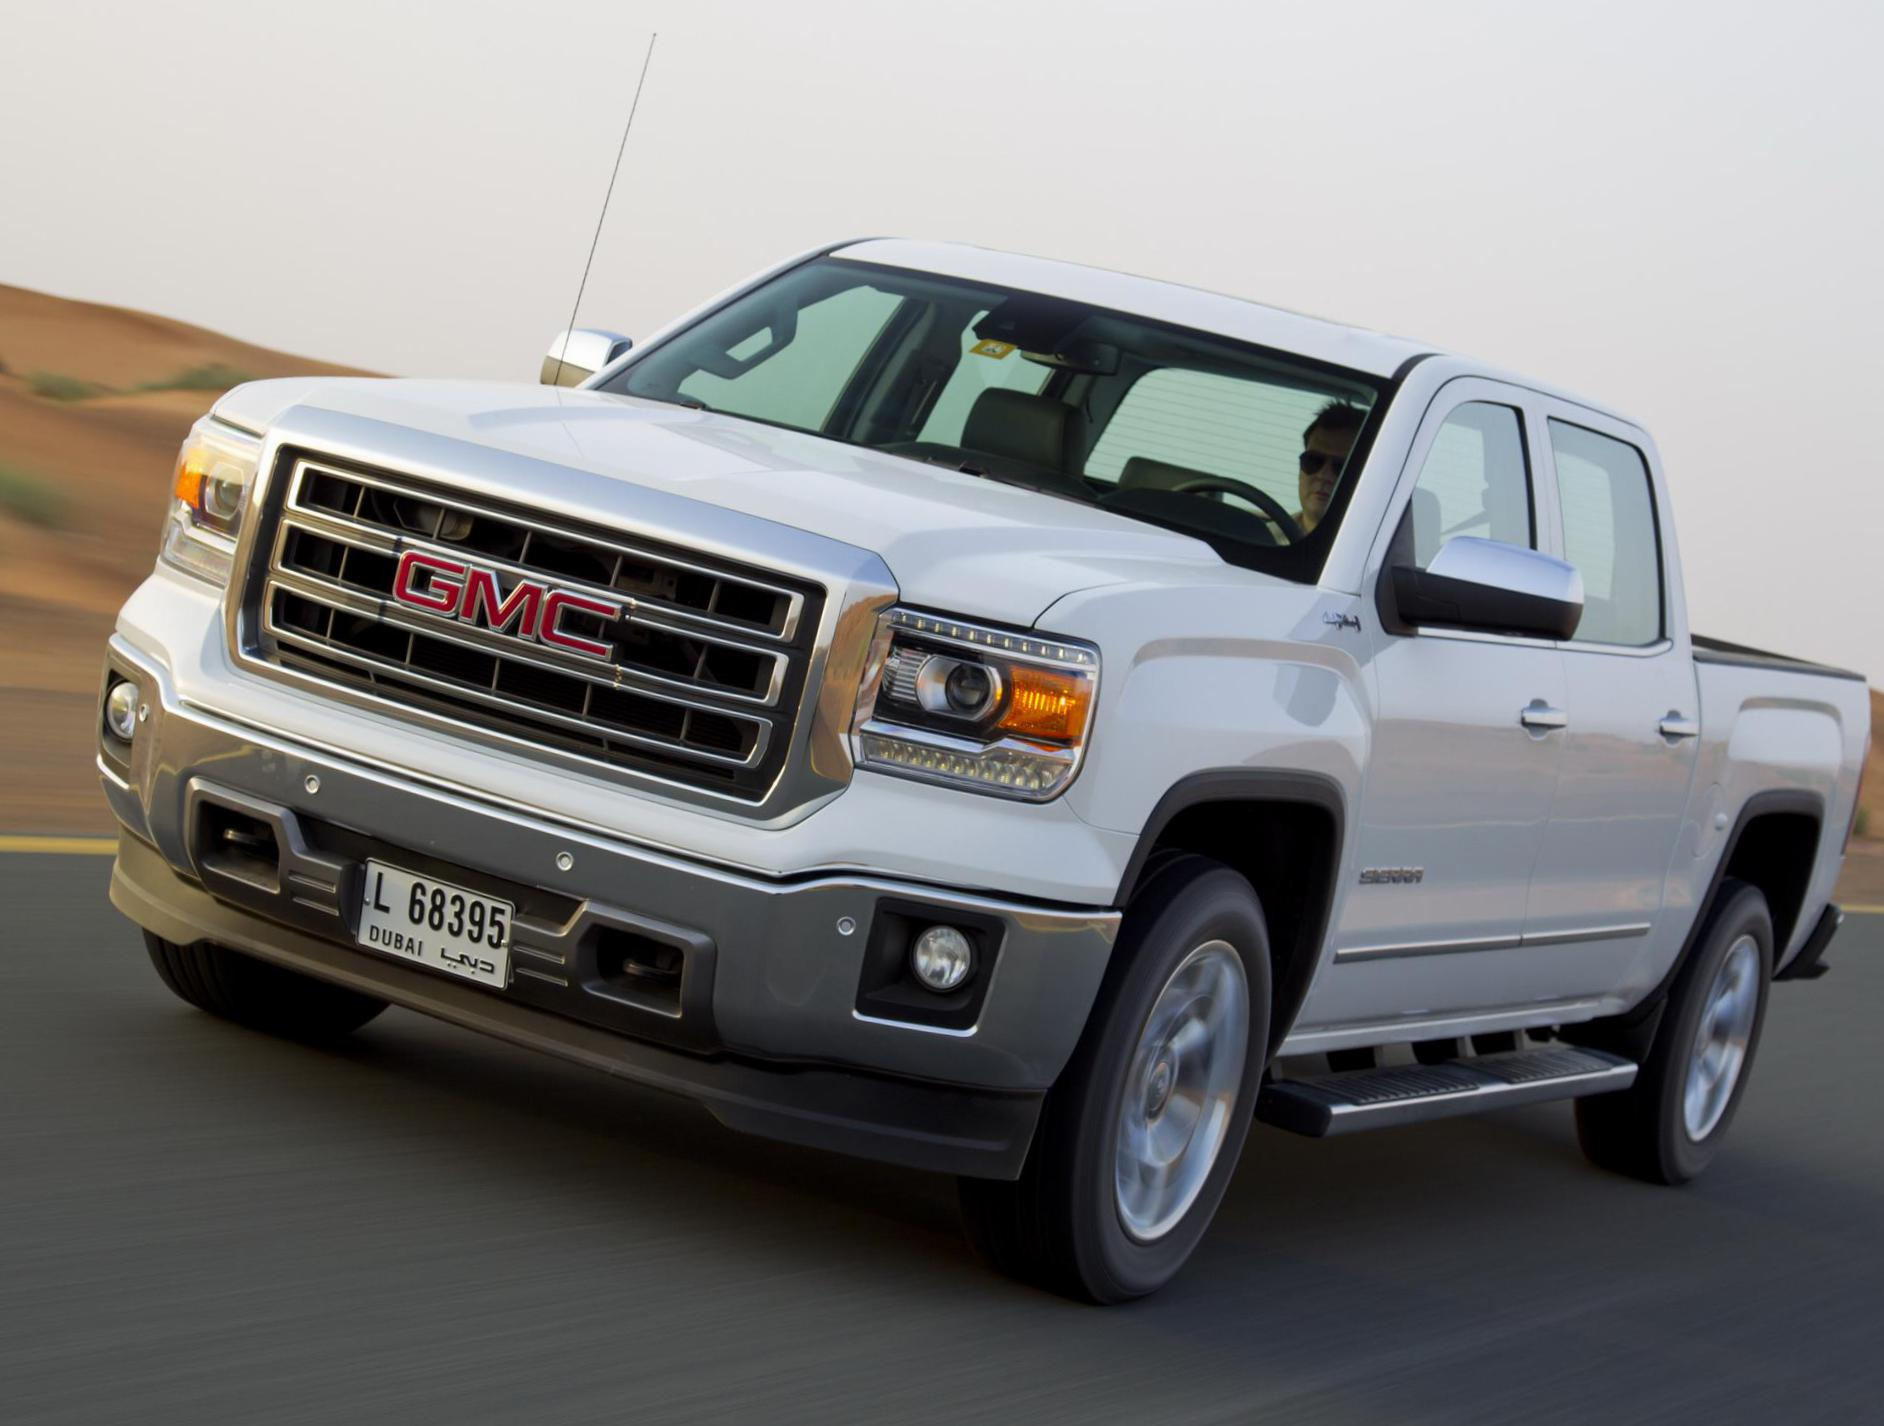 GMC Sierra Crew Cab Specifications 2010